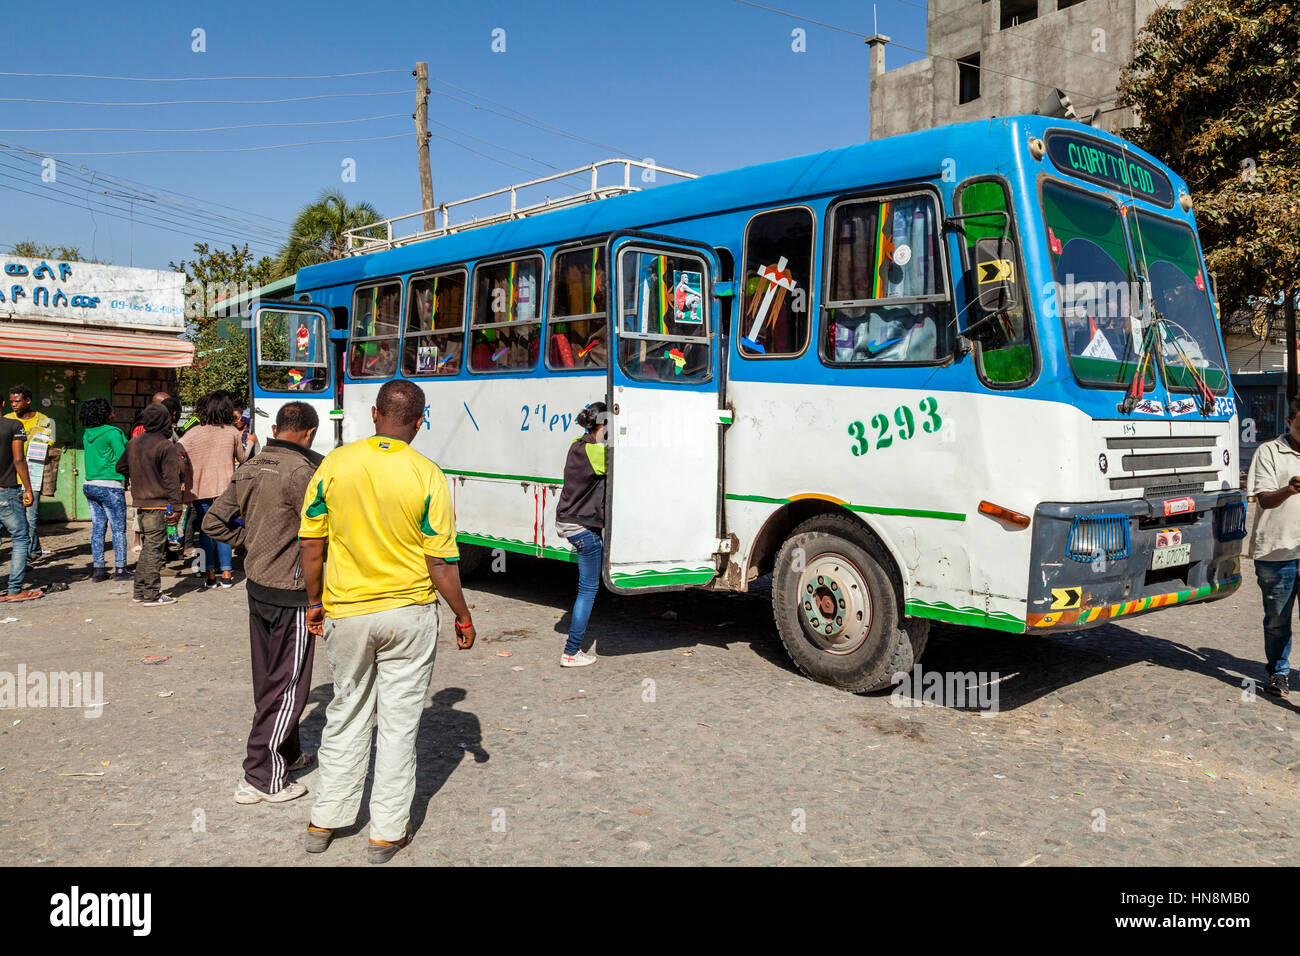 A Bus Getting Ready To Depart From The Bus Station, Ziway, Ethiopia - Stock Image